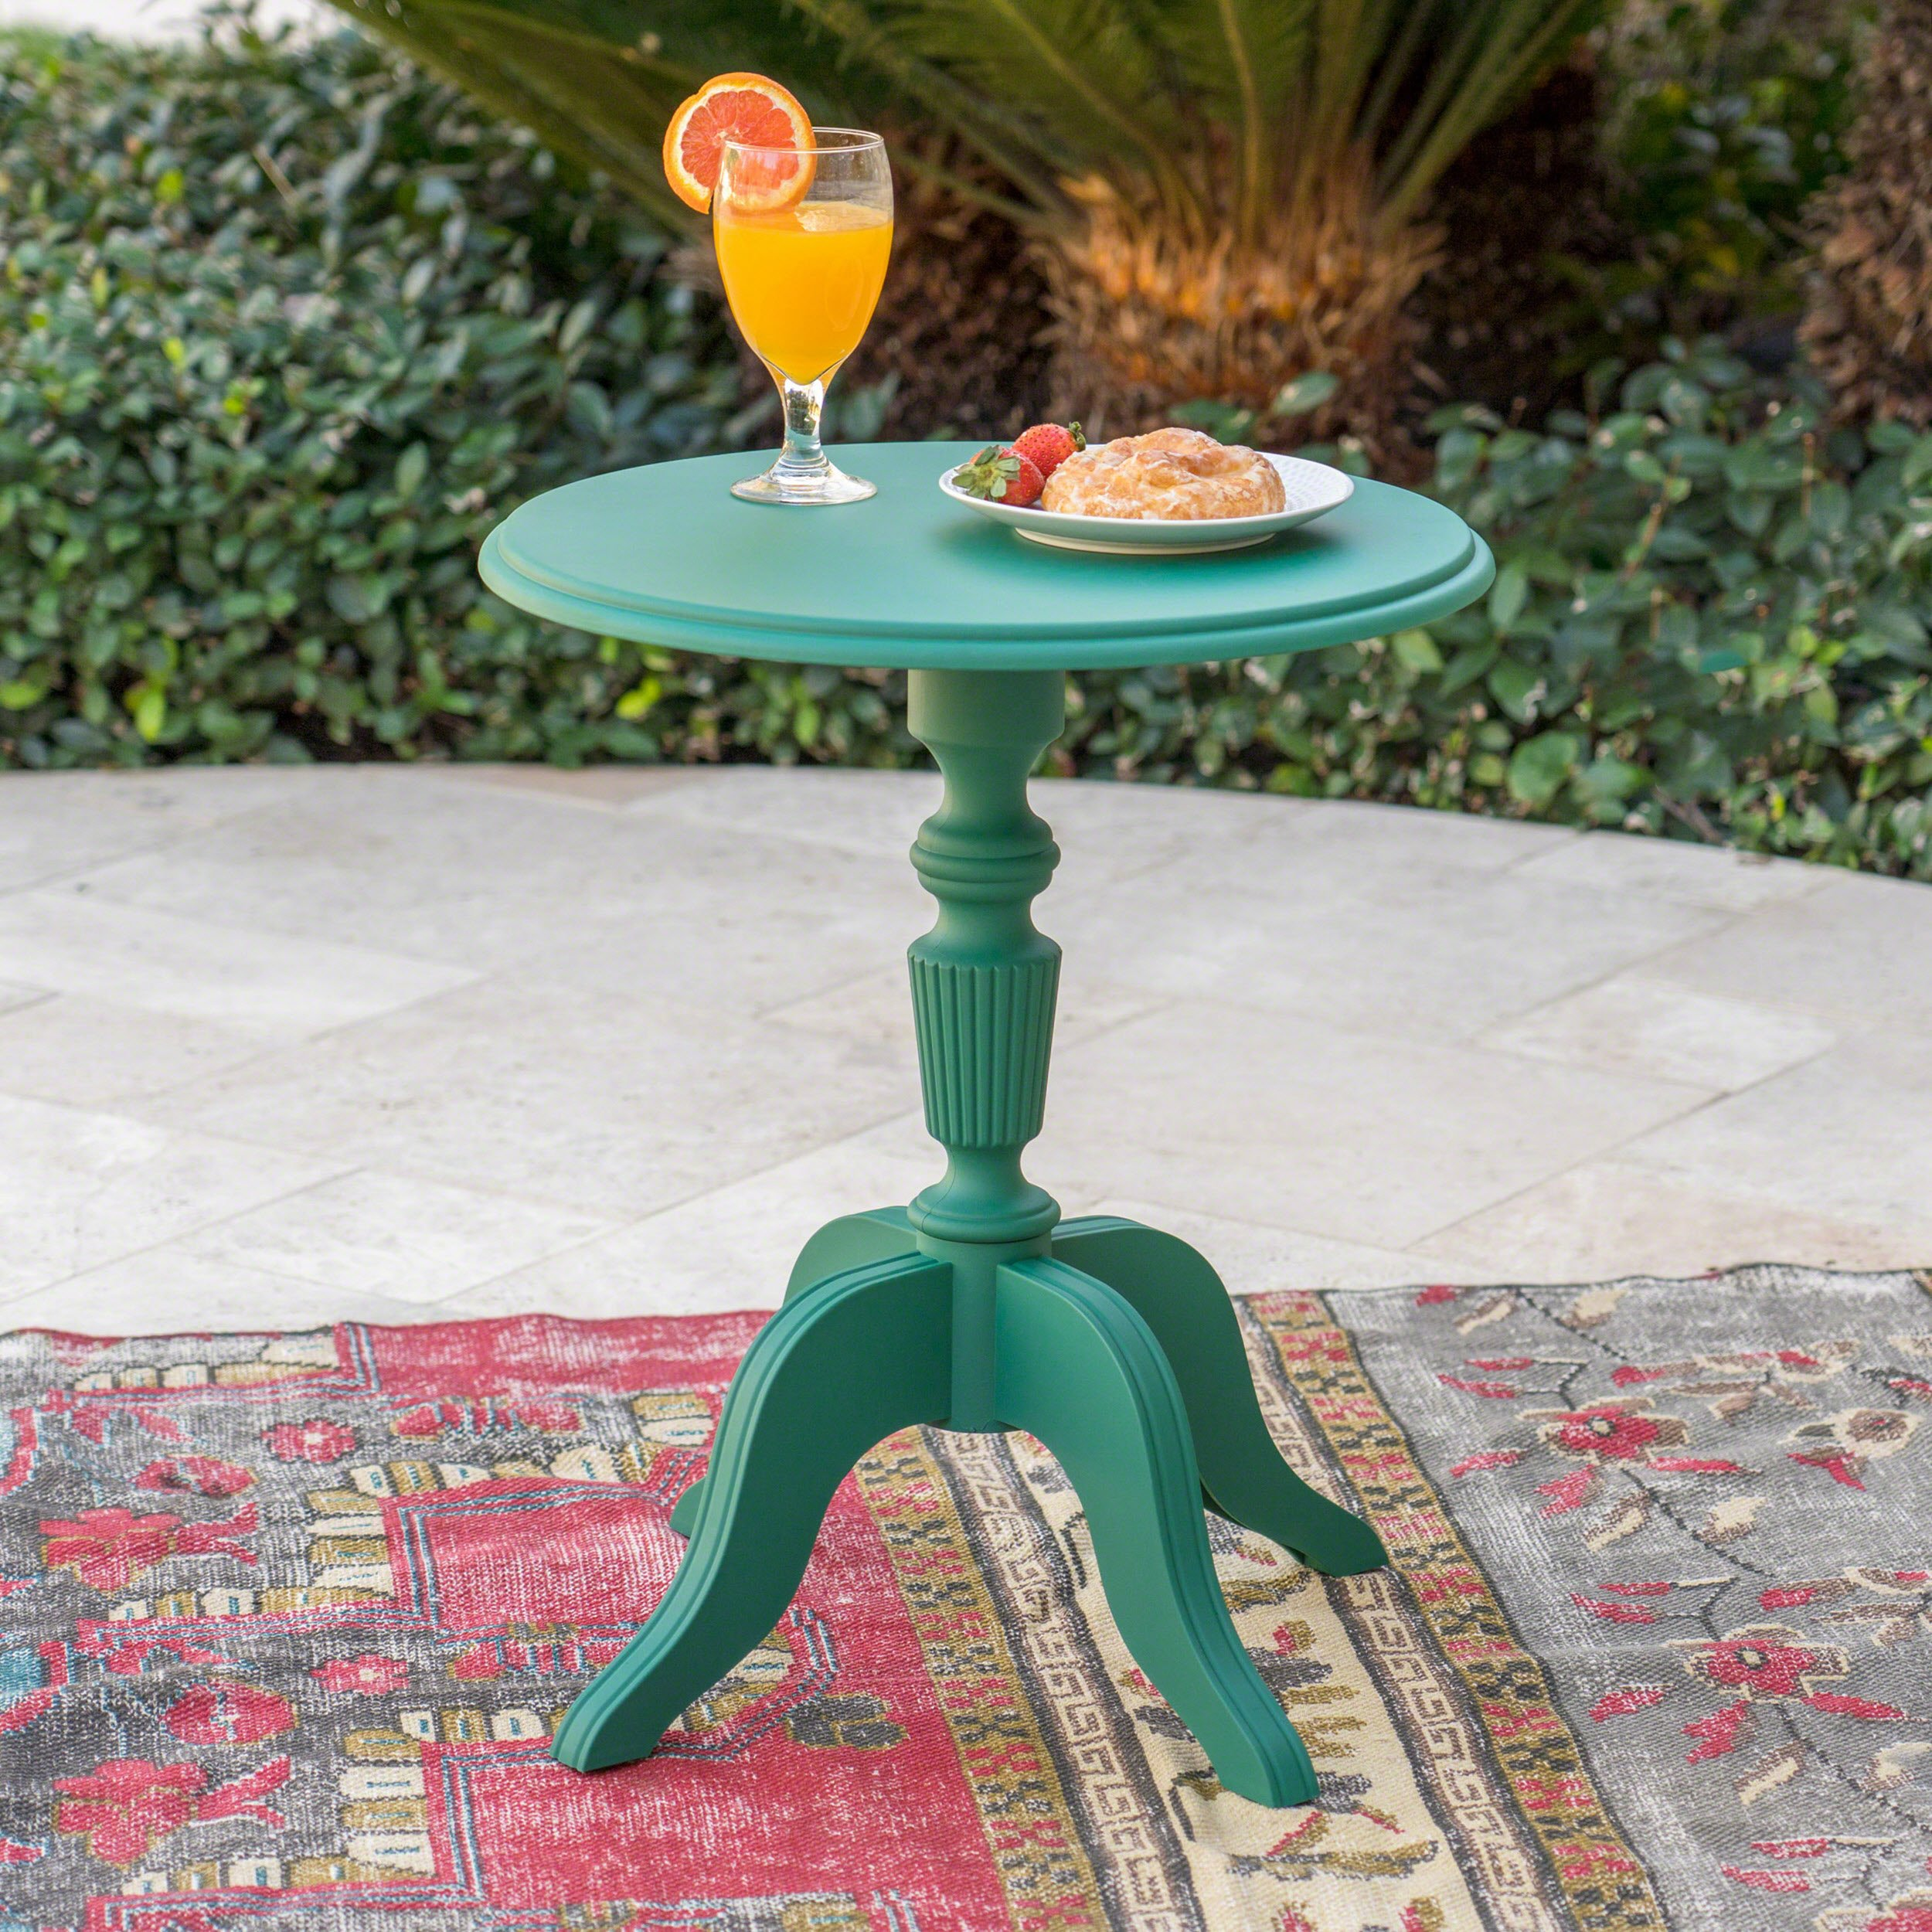 Eco-Cross   Outdoor Side Table   Recycled Nylon   Perfect For Patio   In Magnolia Green